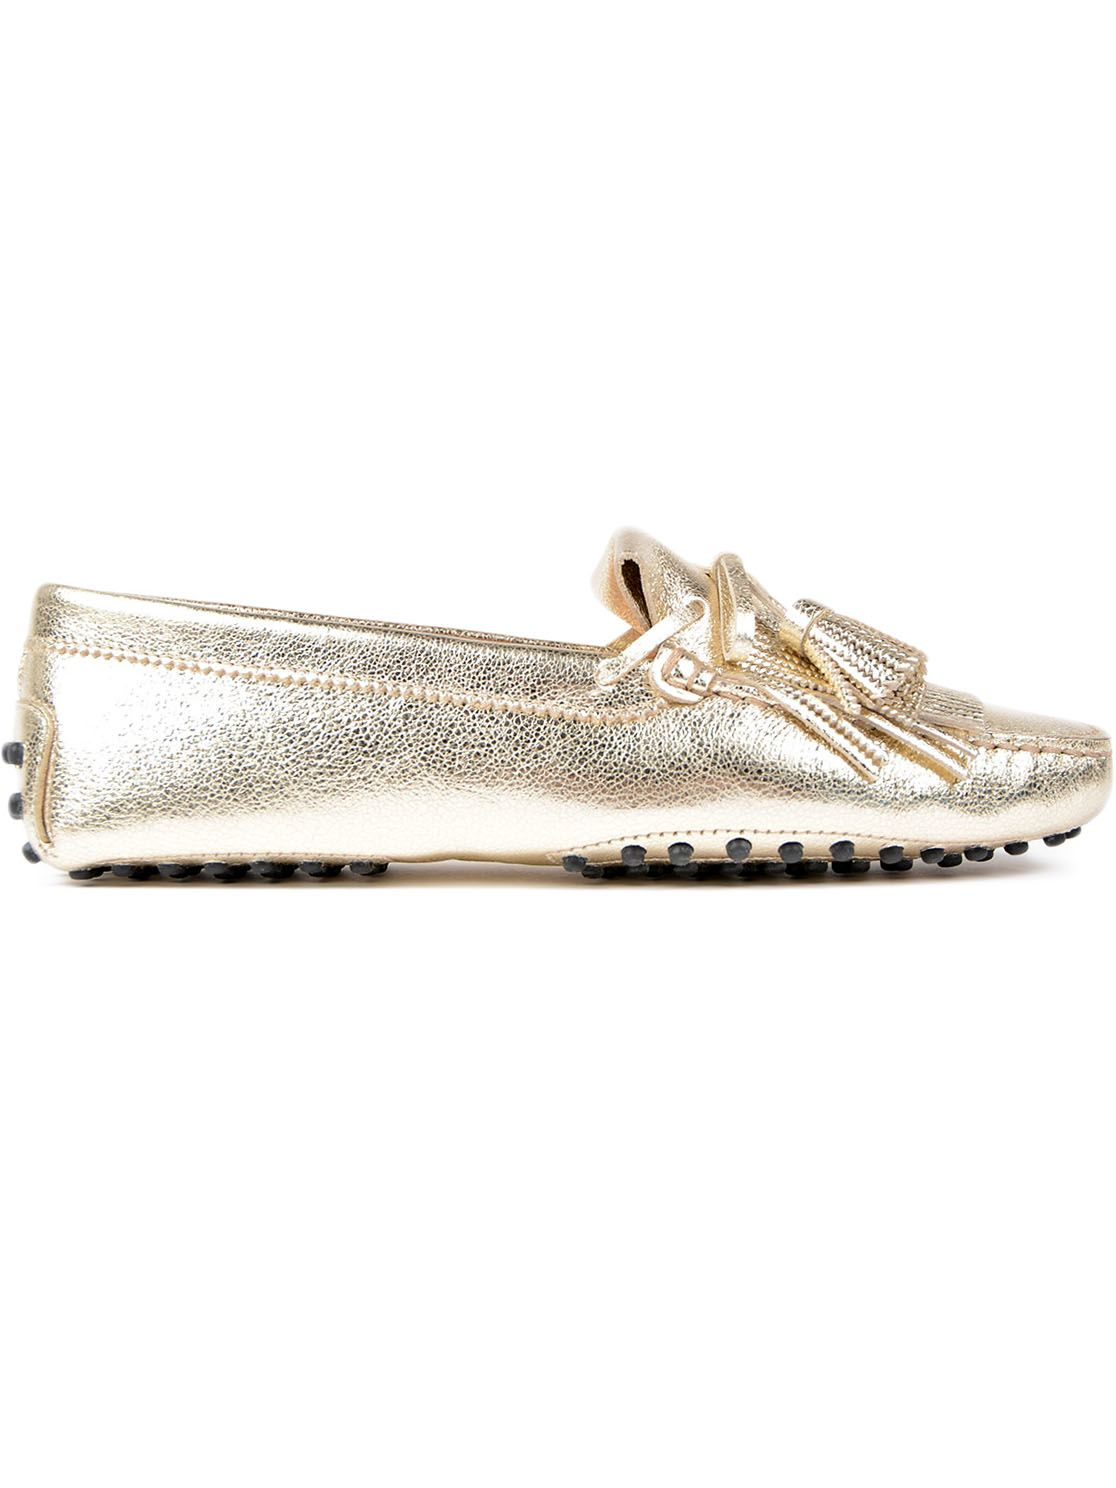 Tods Tassel Detailed Loafers